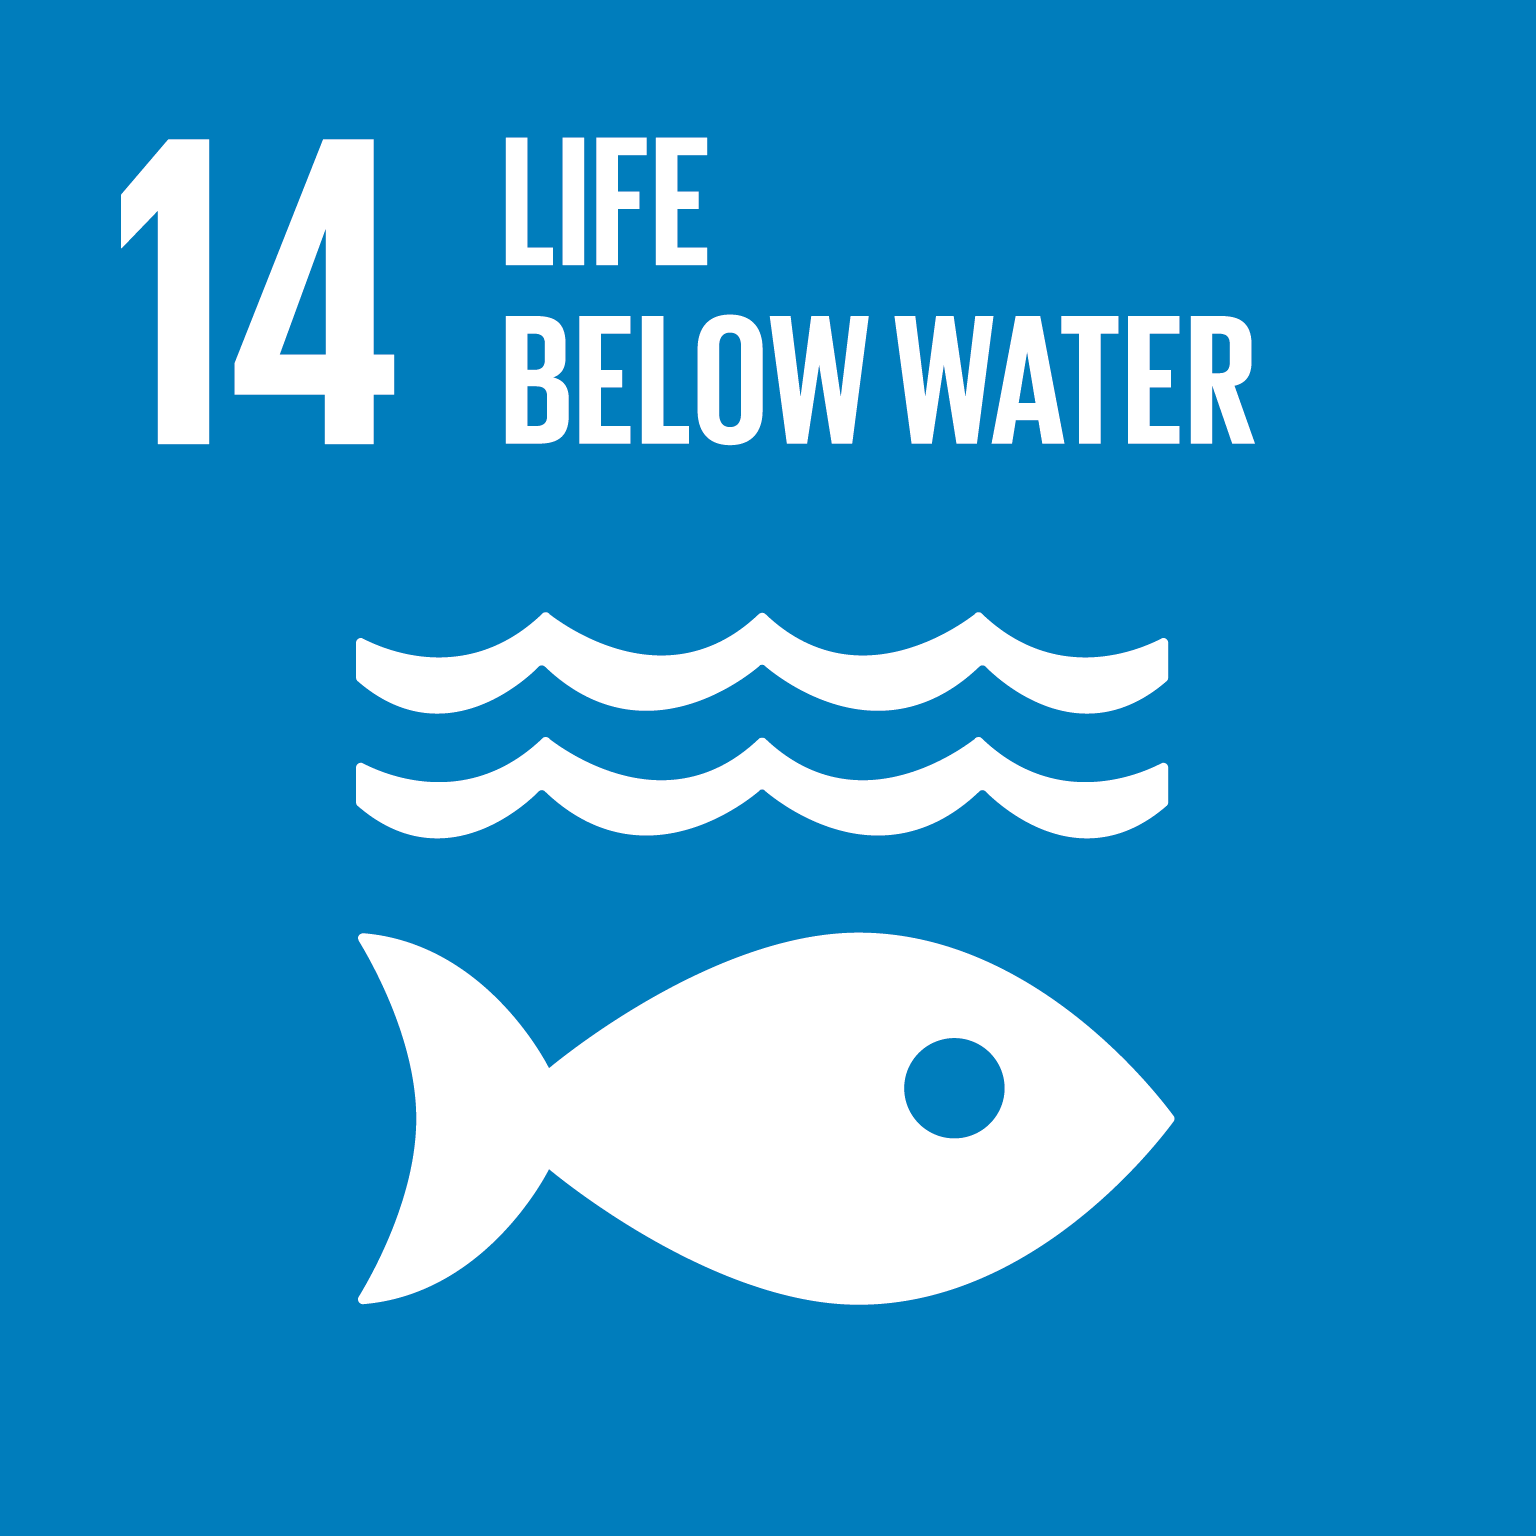 U.N. SDG goal 14, life below water